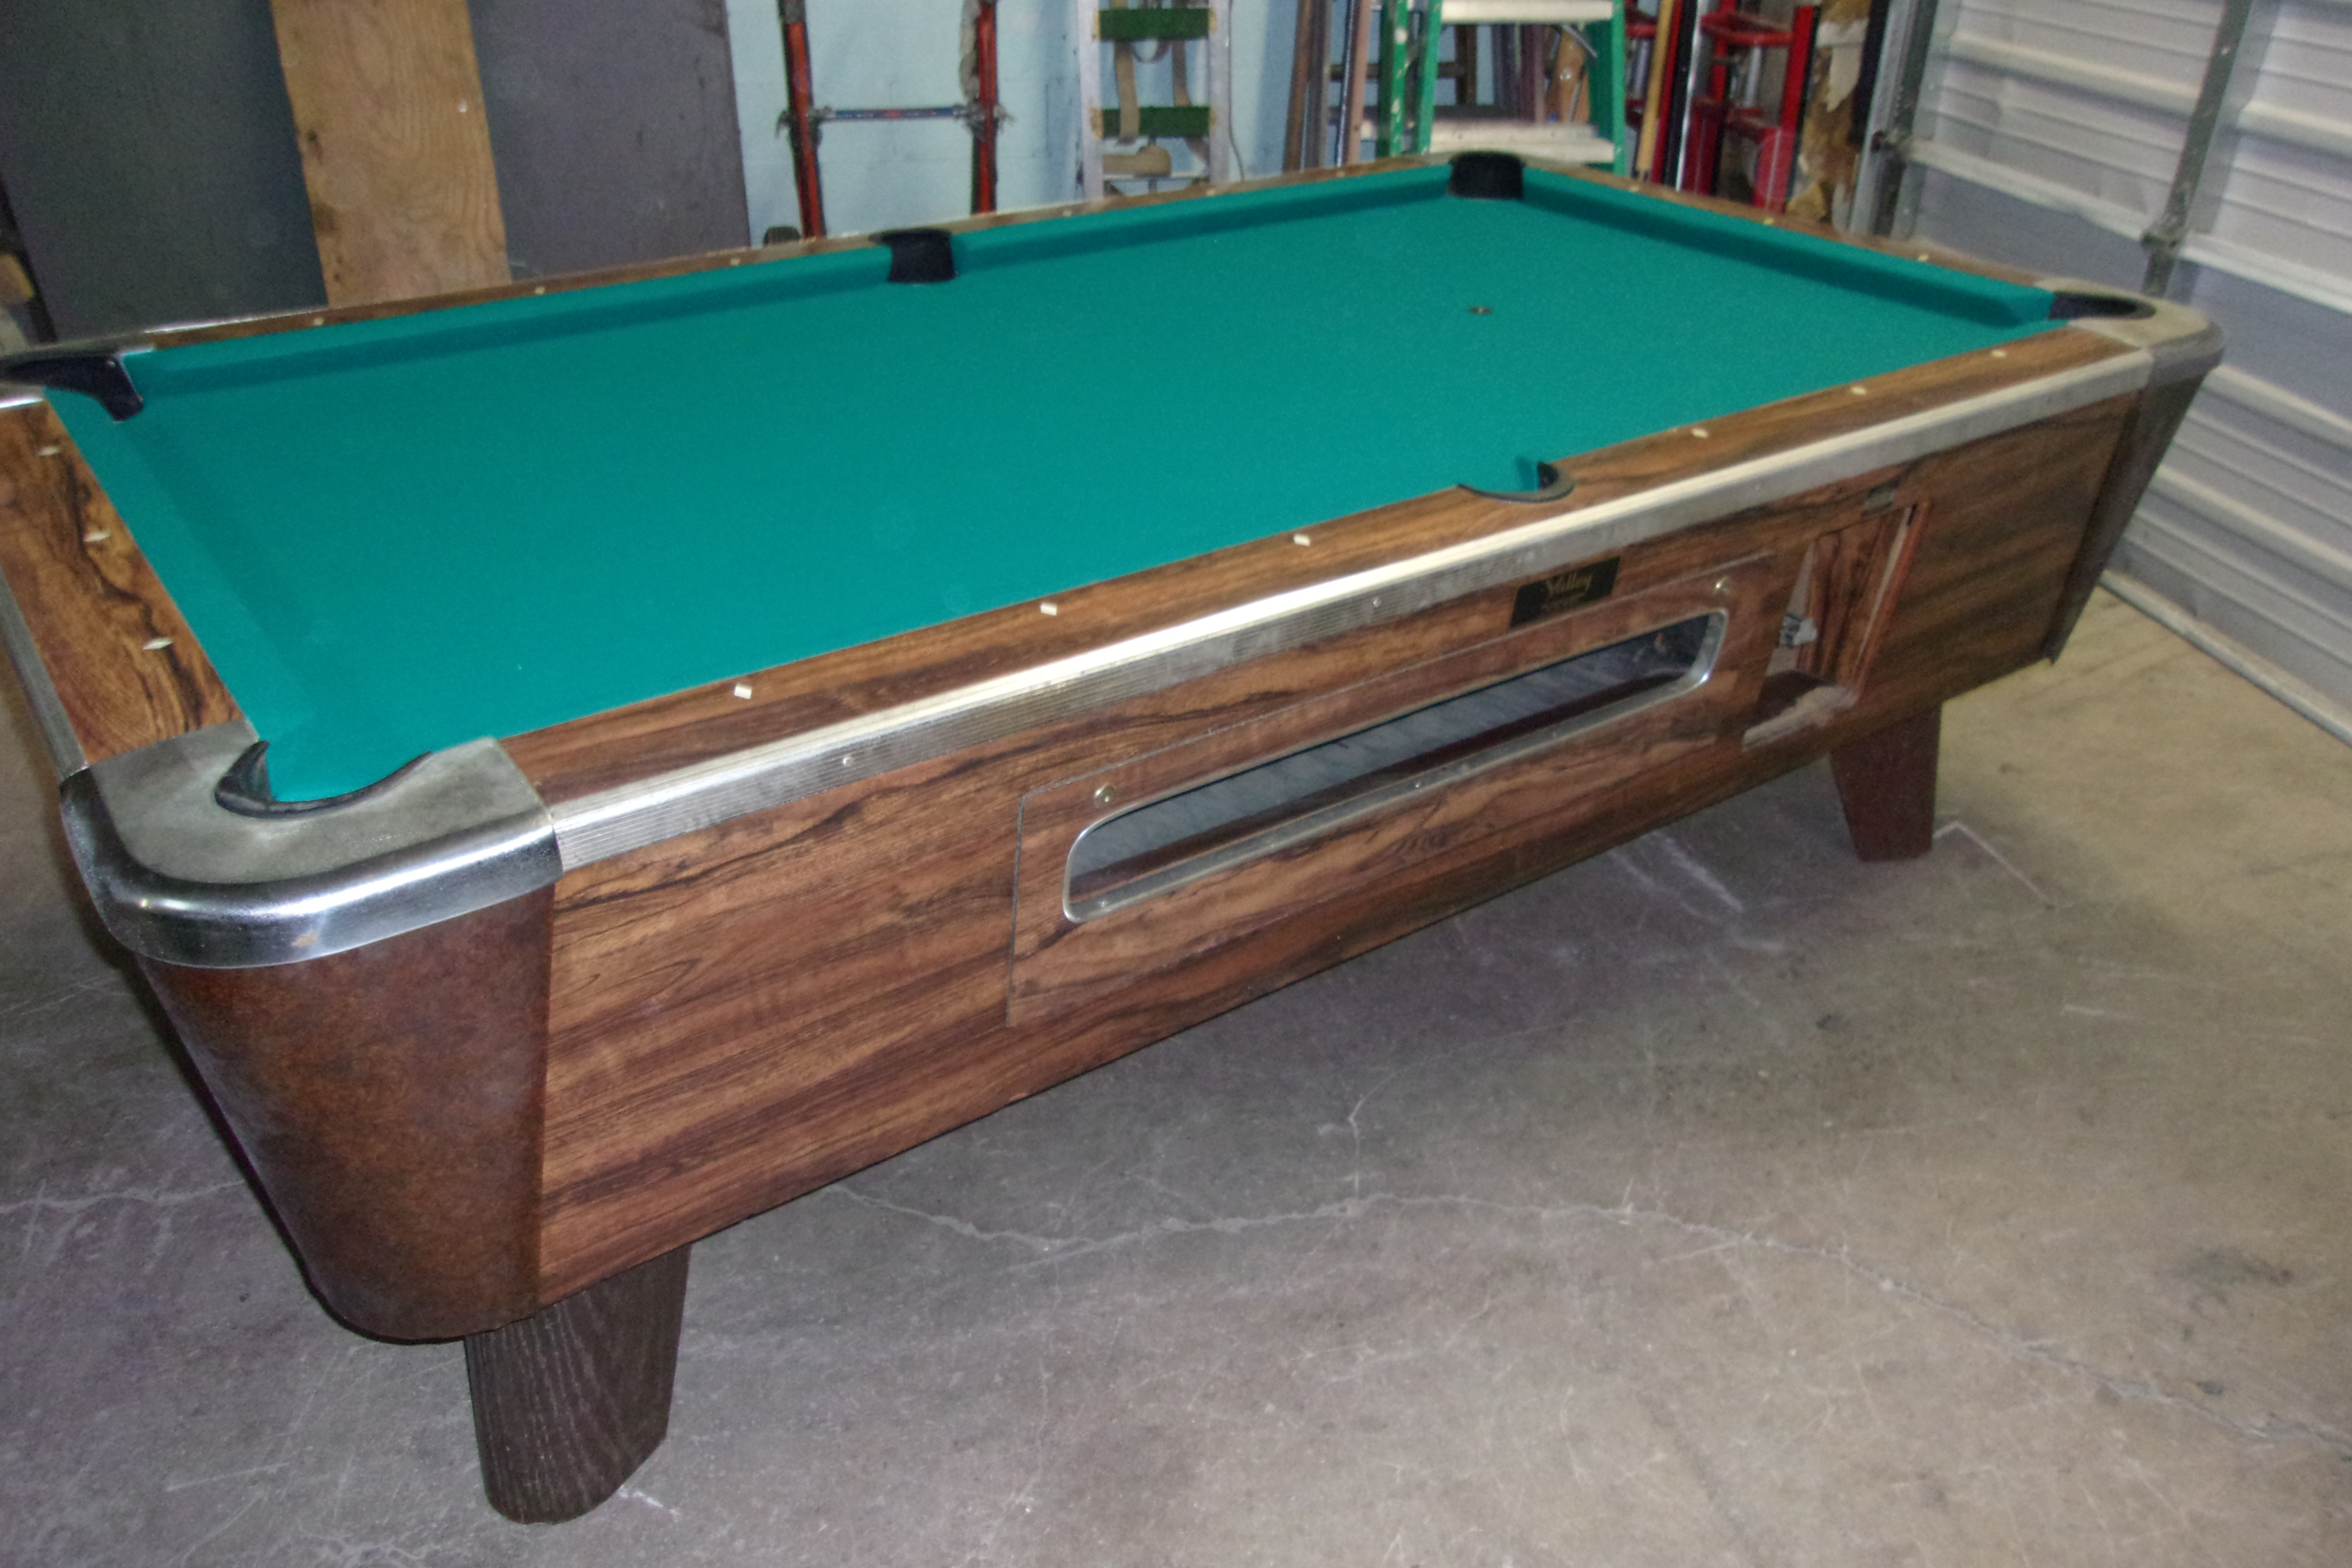 Valley Ft Coin Op Pool Table PT Thomas Games - Pool table description